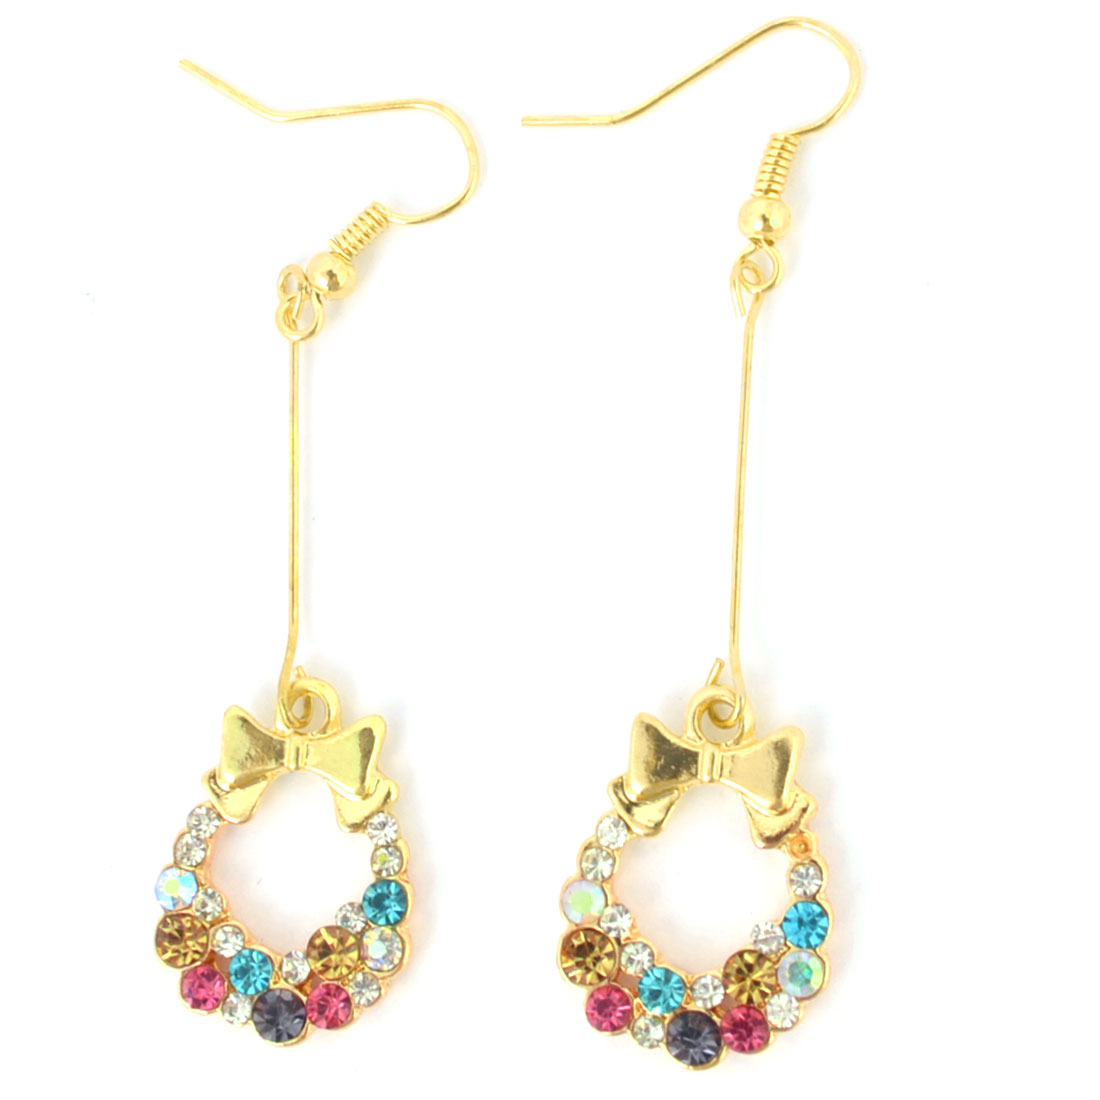 Lady Pair Gold Tone Chain Connect Colorful Rhinestones Pendant Hook Earrings